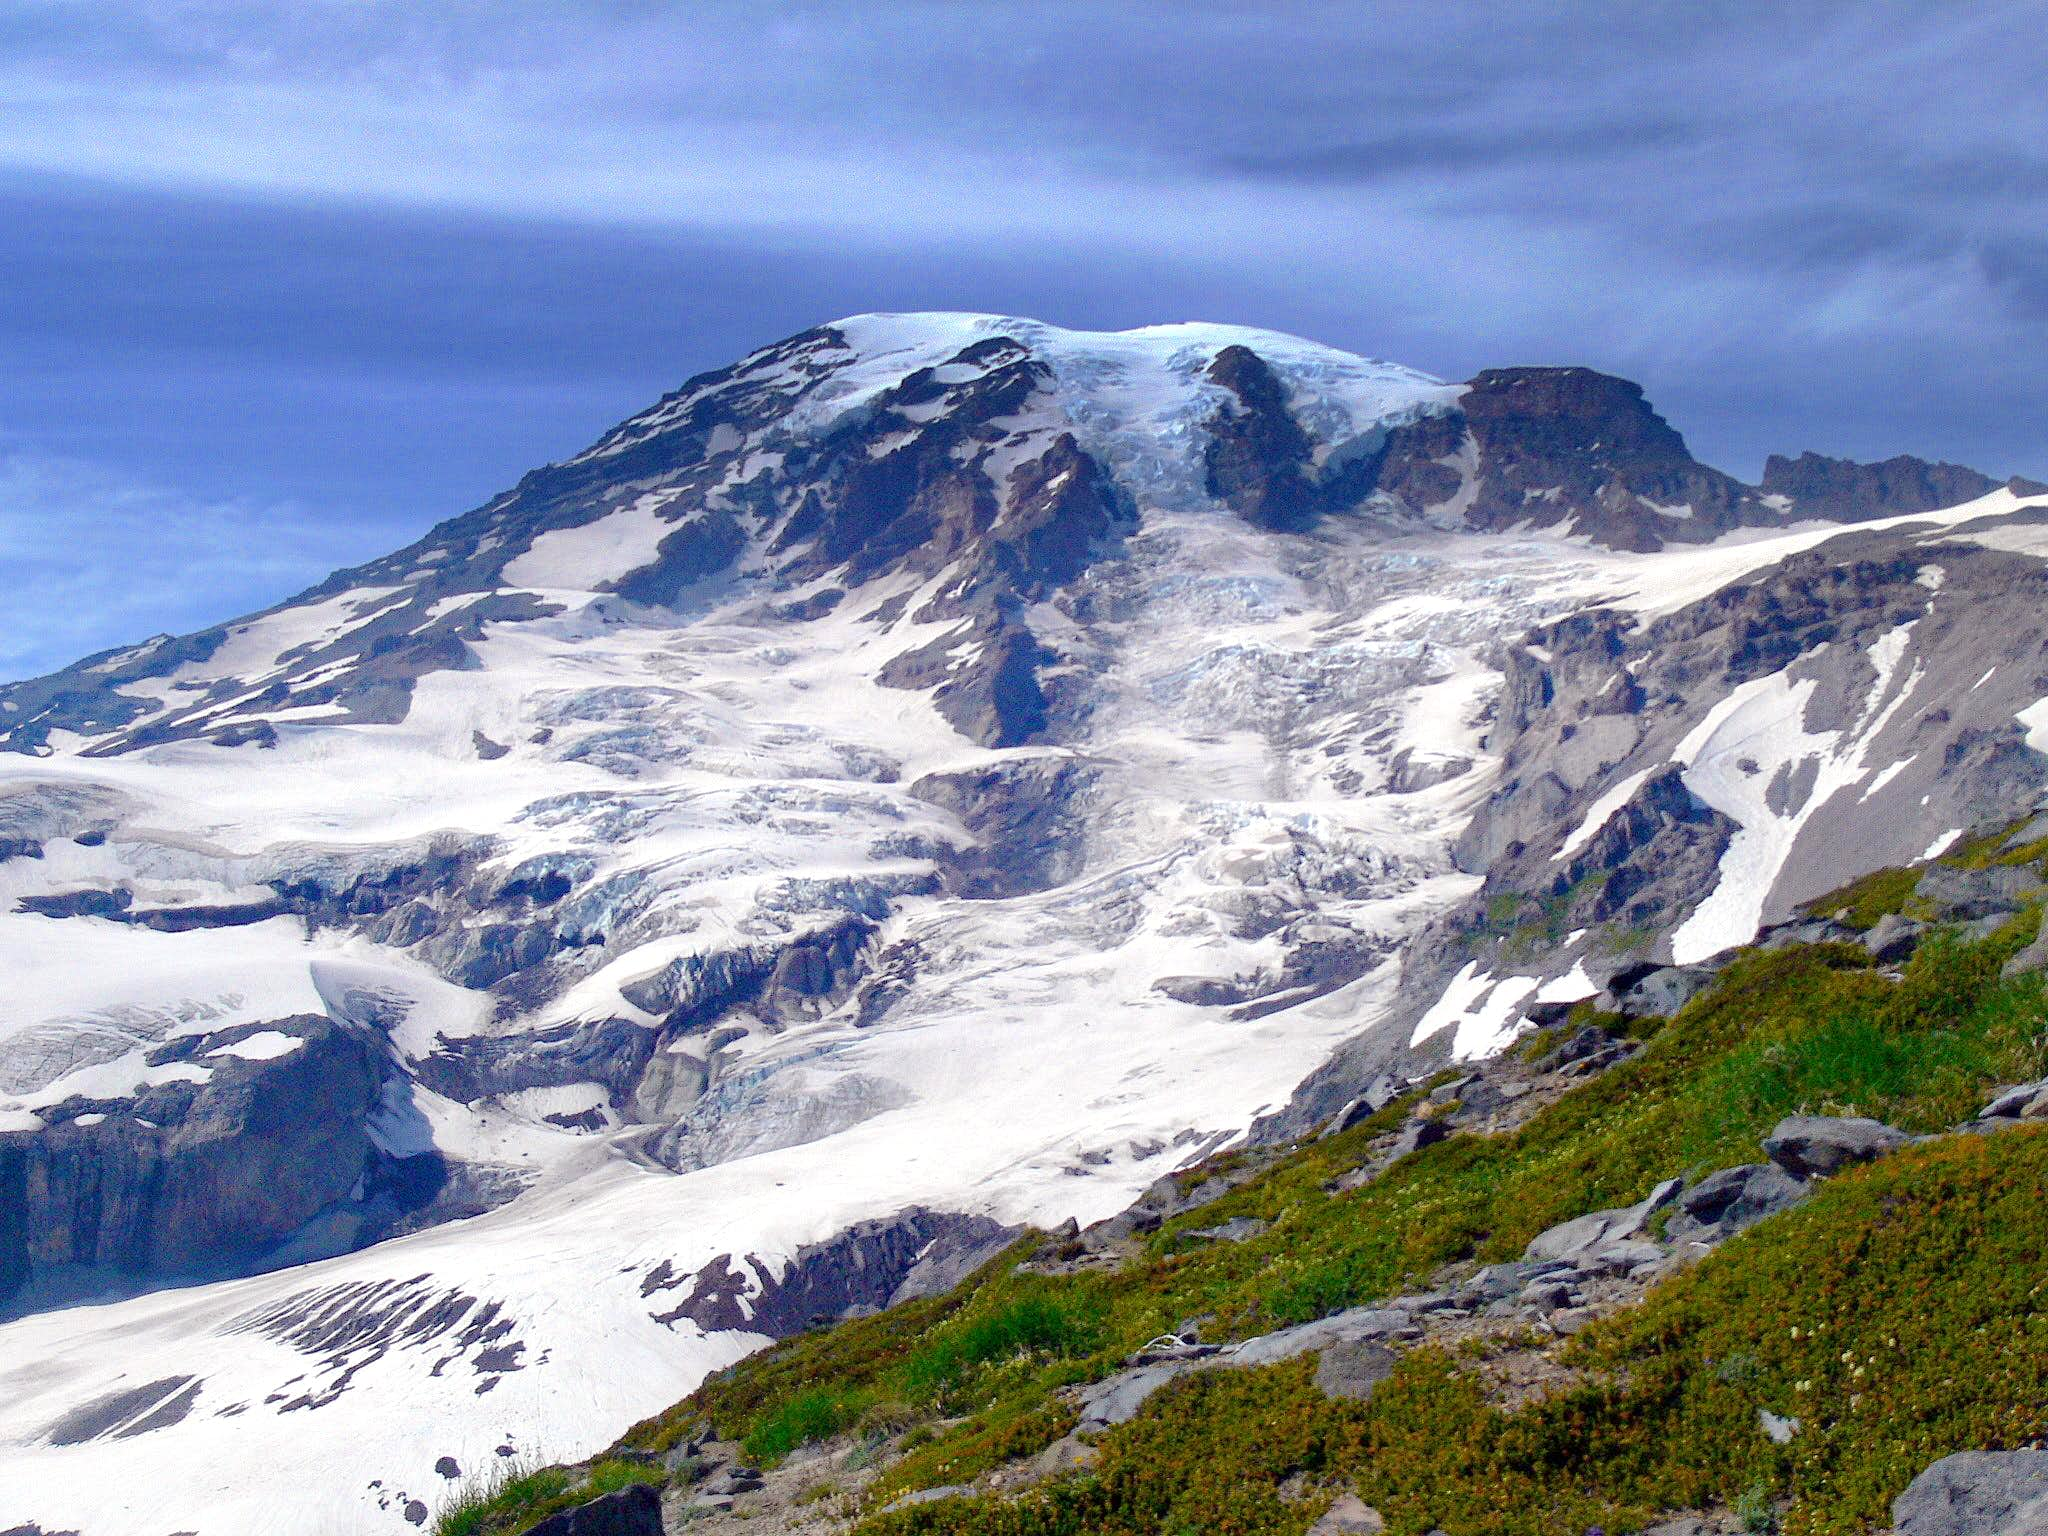 A Reckoning Experience on Mount Rainier